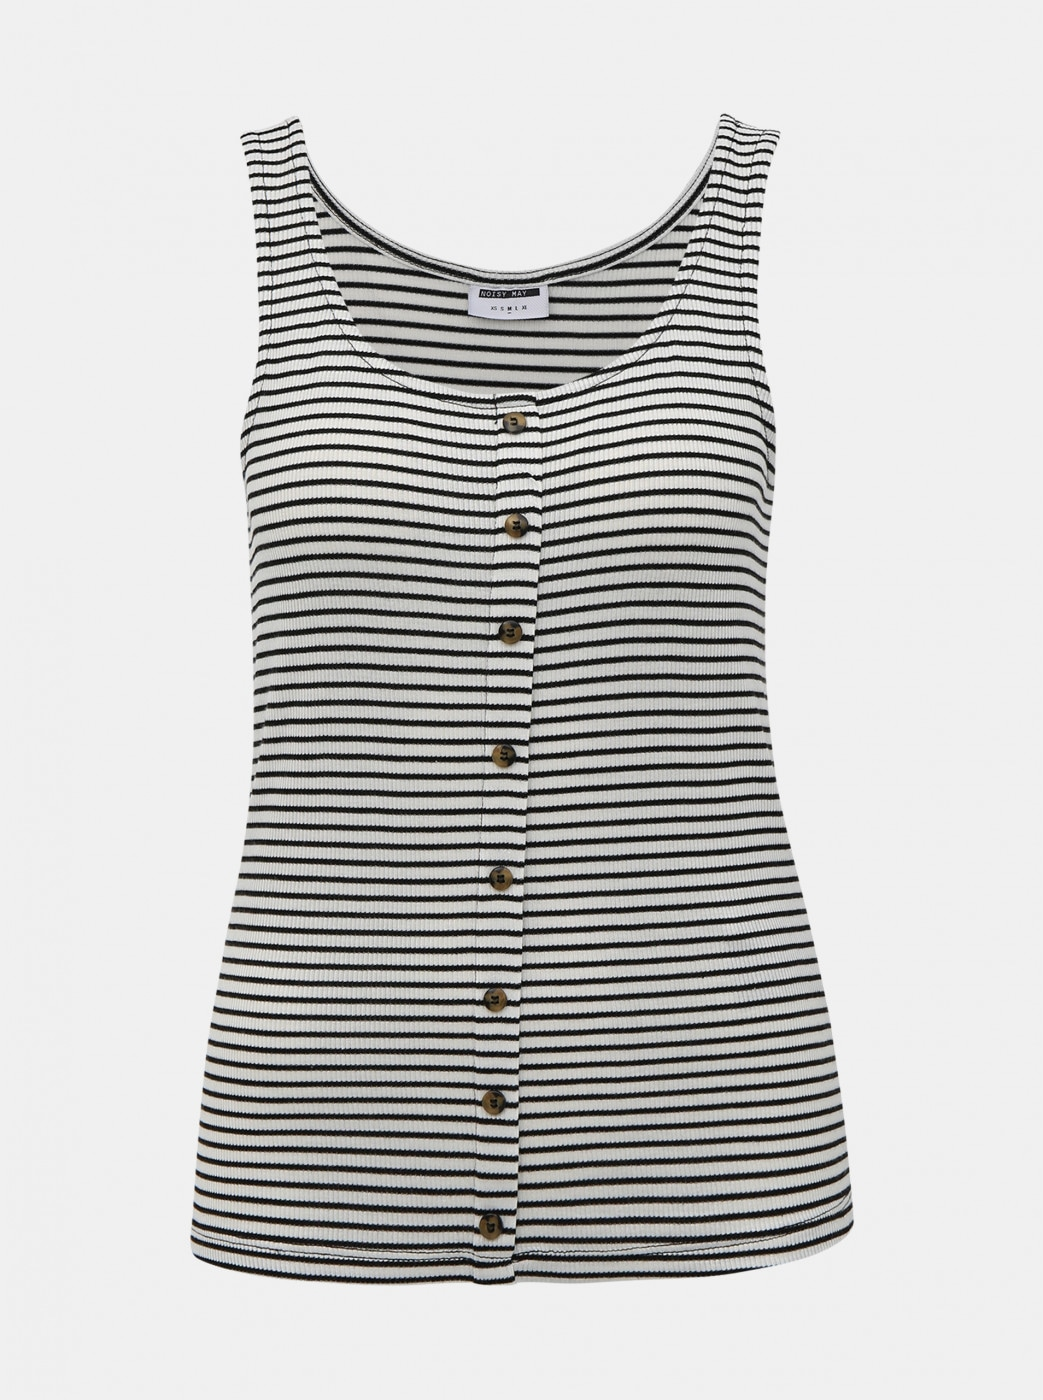 Noisy May Henley Black-and-White Striped Tank Top